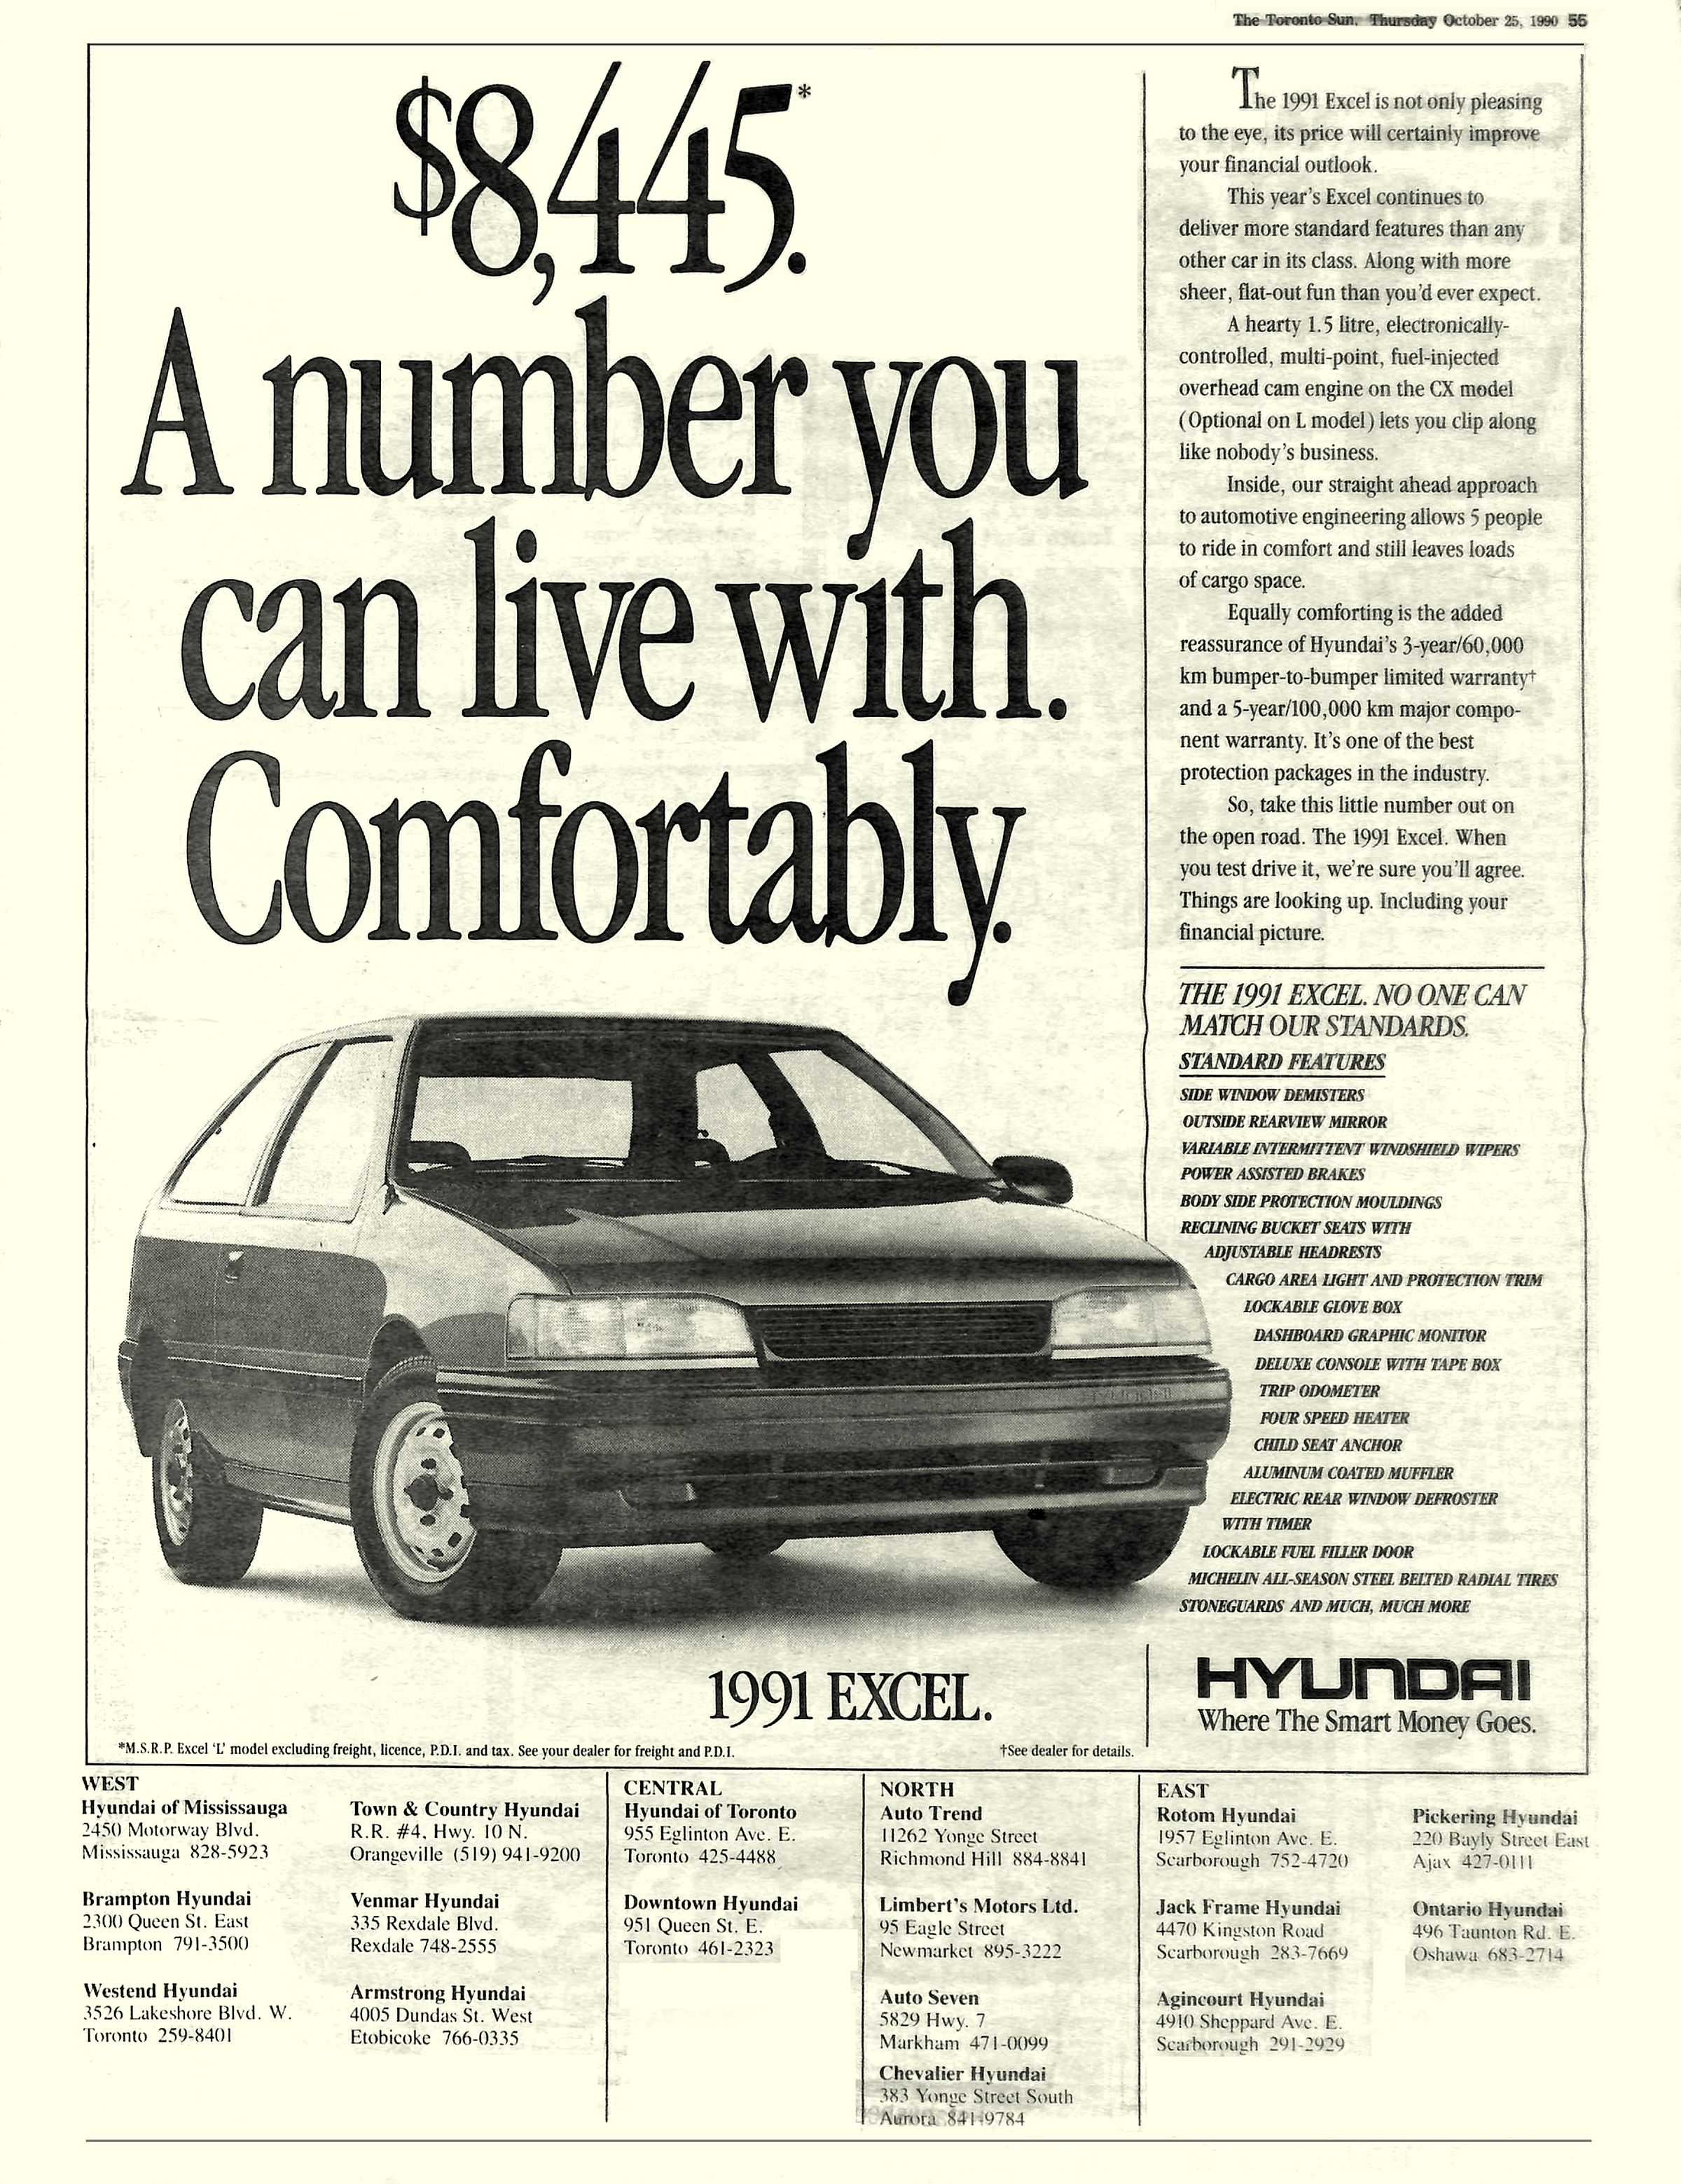 Hyundai Excel Newspaper Ad 1990 Agency Backer Spielvogel Bates